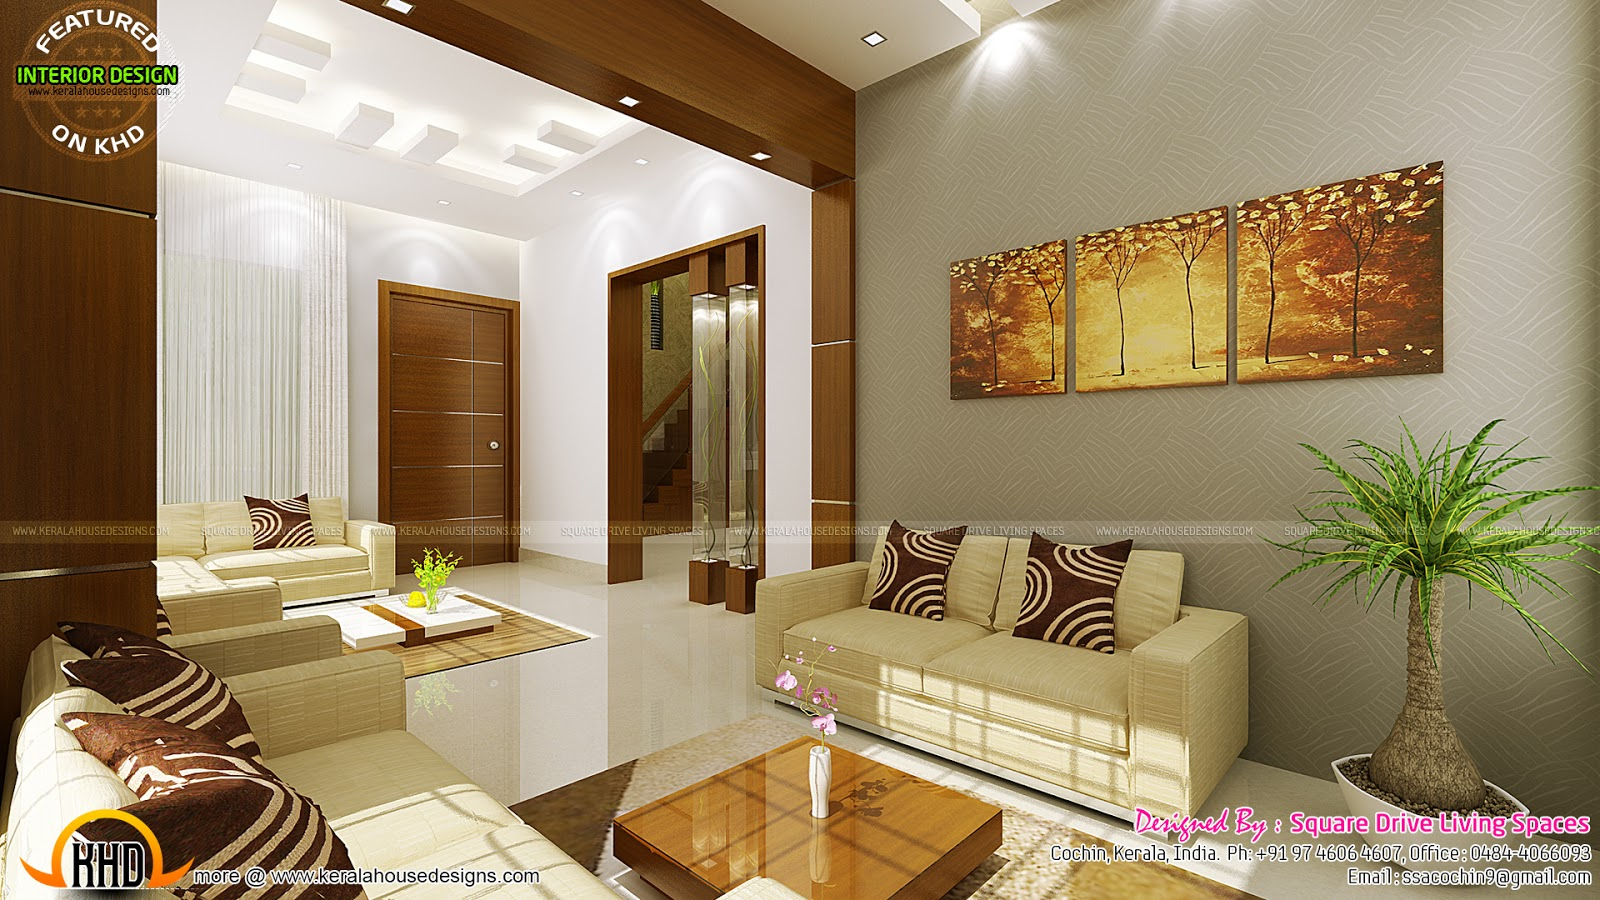 Contemporary kitchen dining and living room kerala home - Design interior ...